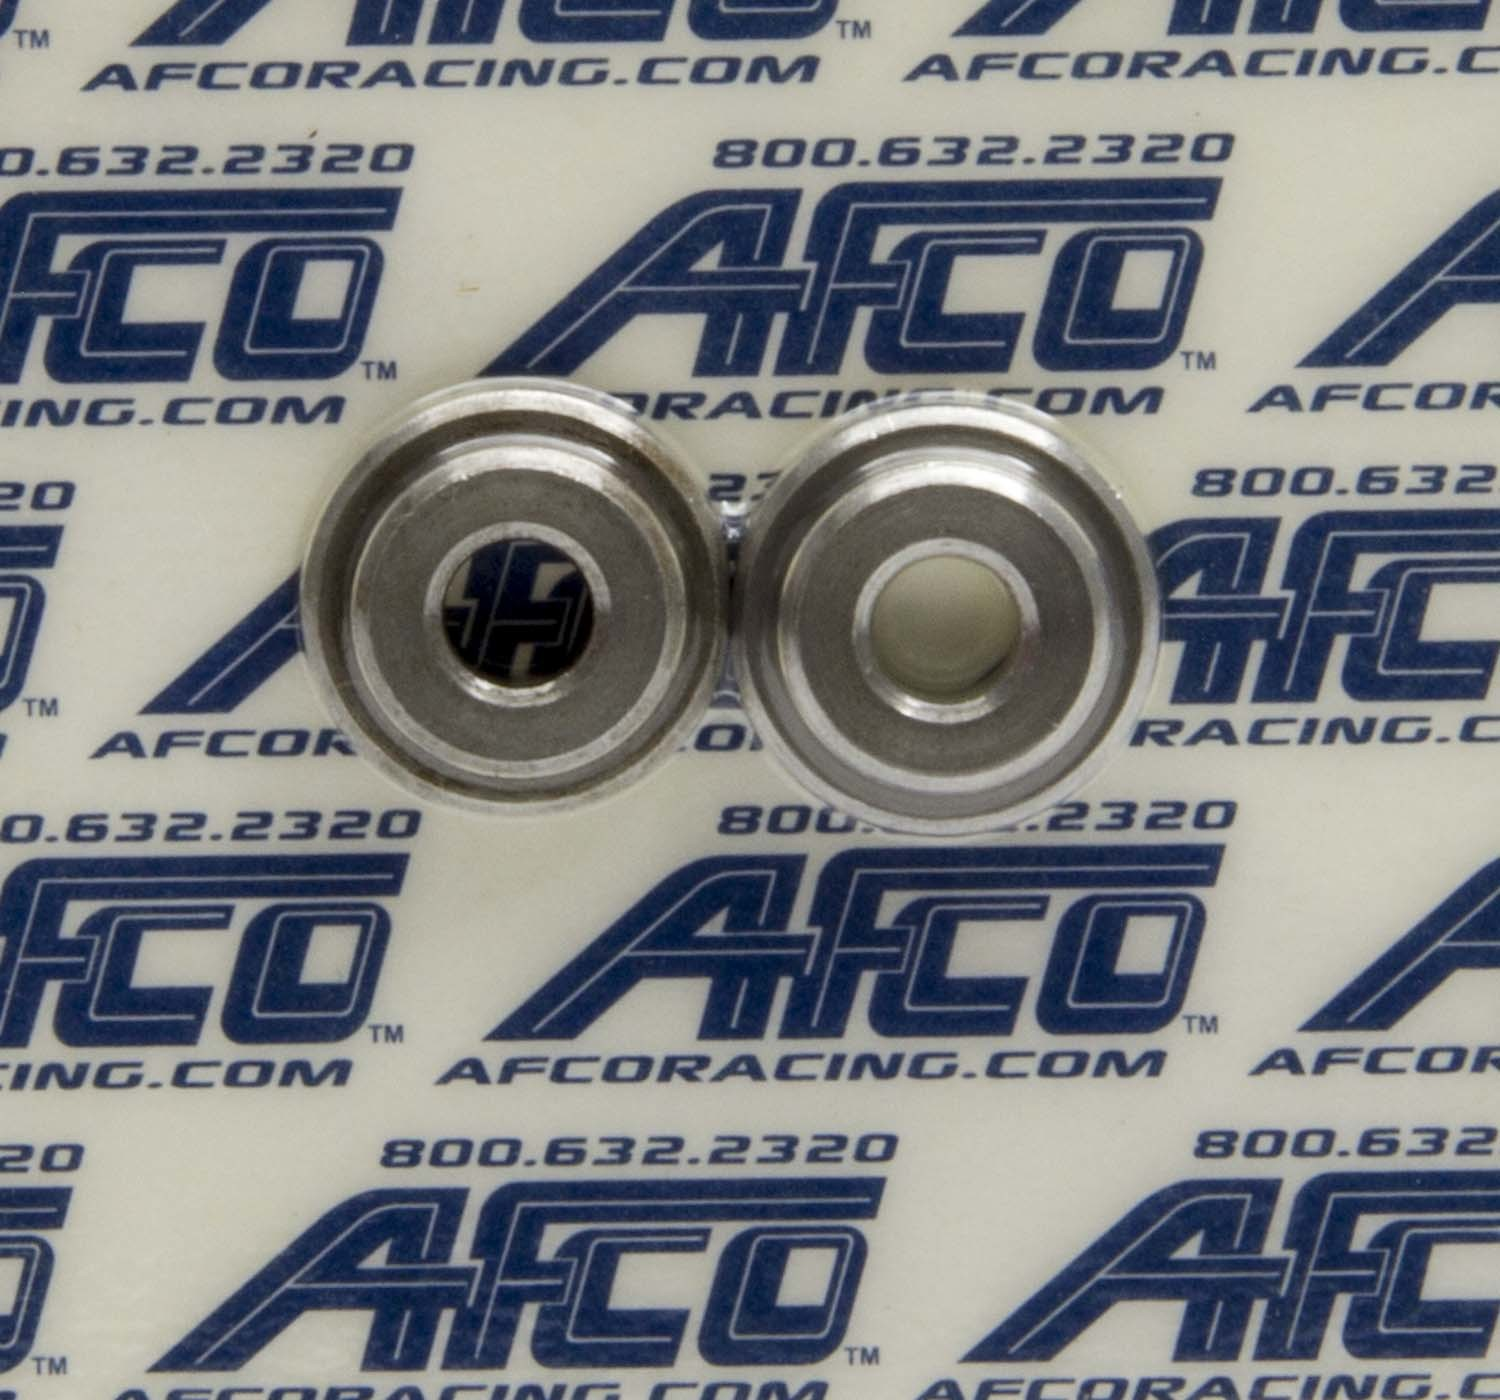 AFCO Racing Products 10174 Throttle Linkage Bushing, 2 Piece, Steel, Natural, Universal, Pair